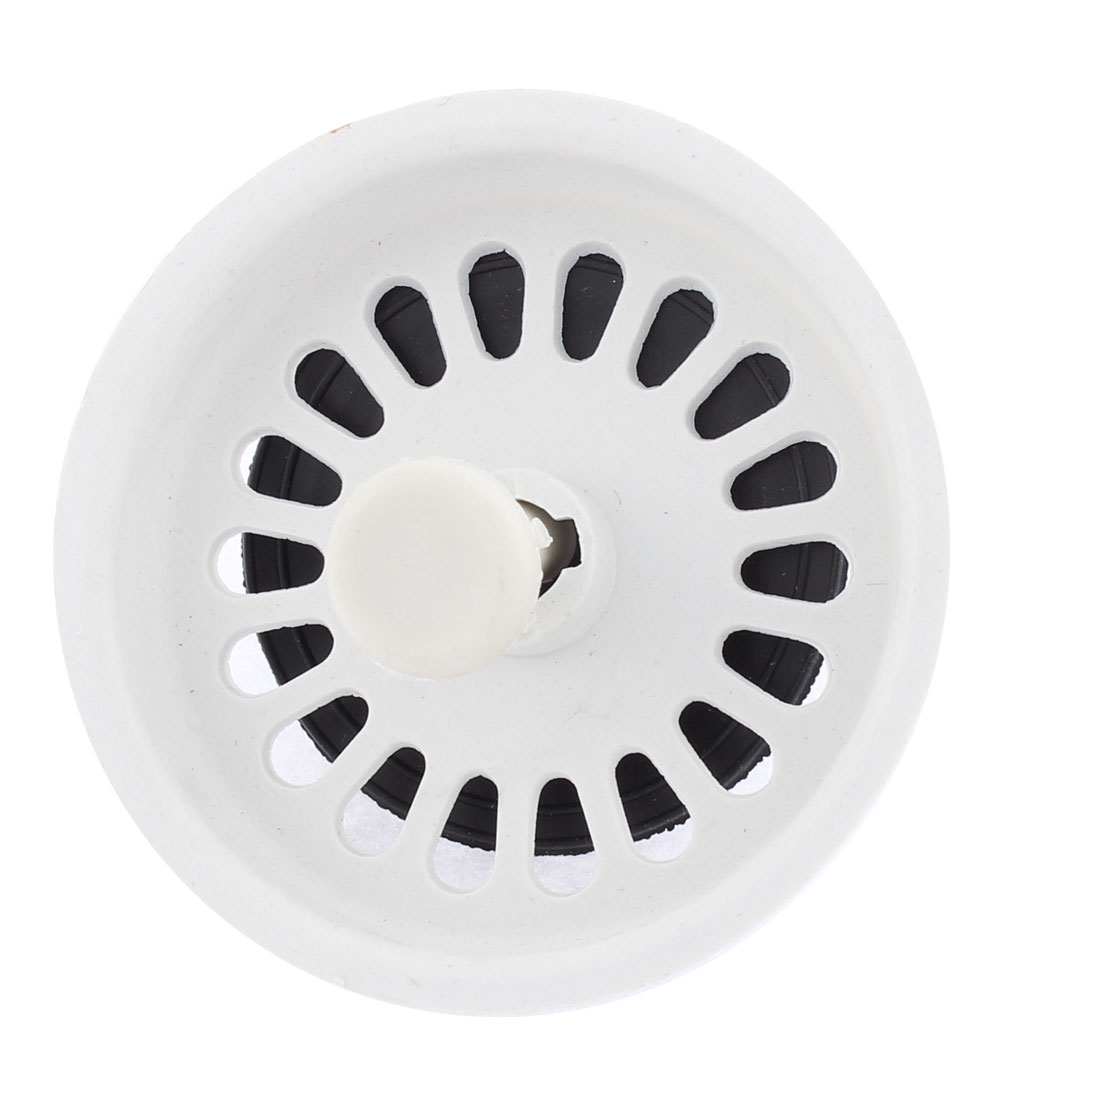 Uxcell white black plastic bathroom kitchen sink stopper drain strainer blackwhite in colanders strainers from home garden on aliexpress com alibaba